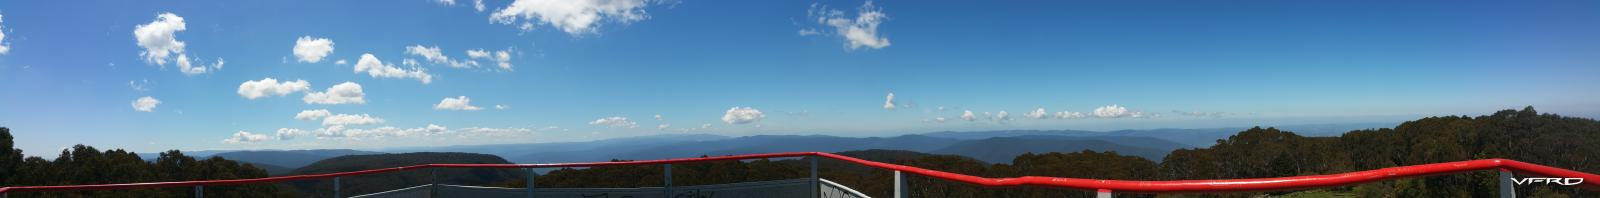 20171112_Mt Donna Lookout 05.jpg